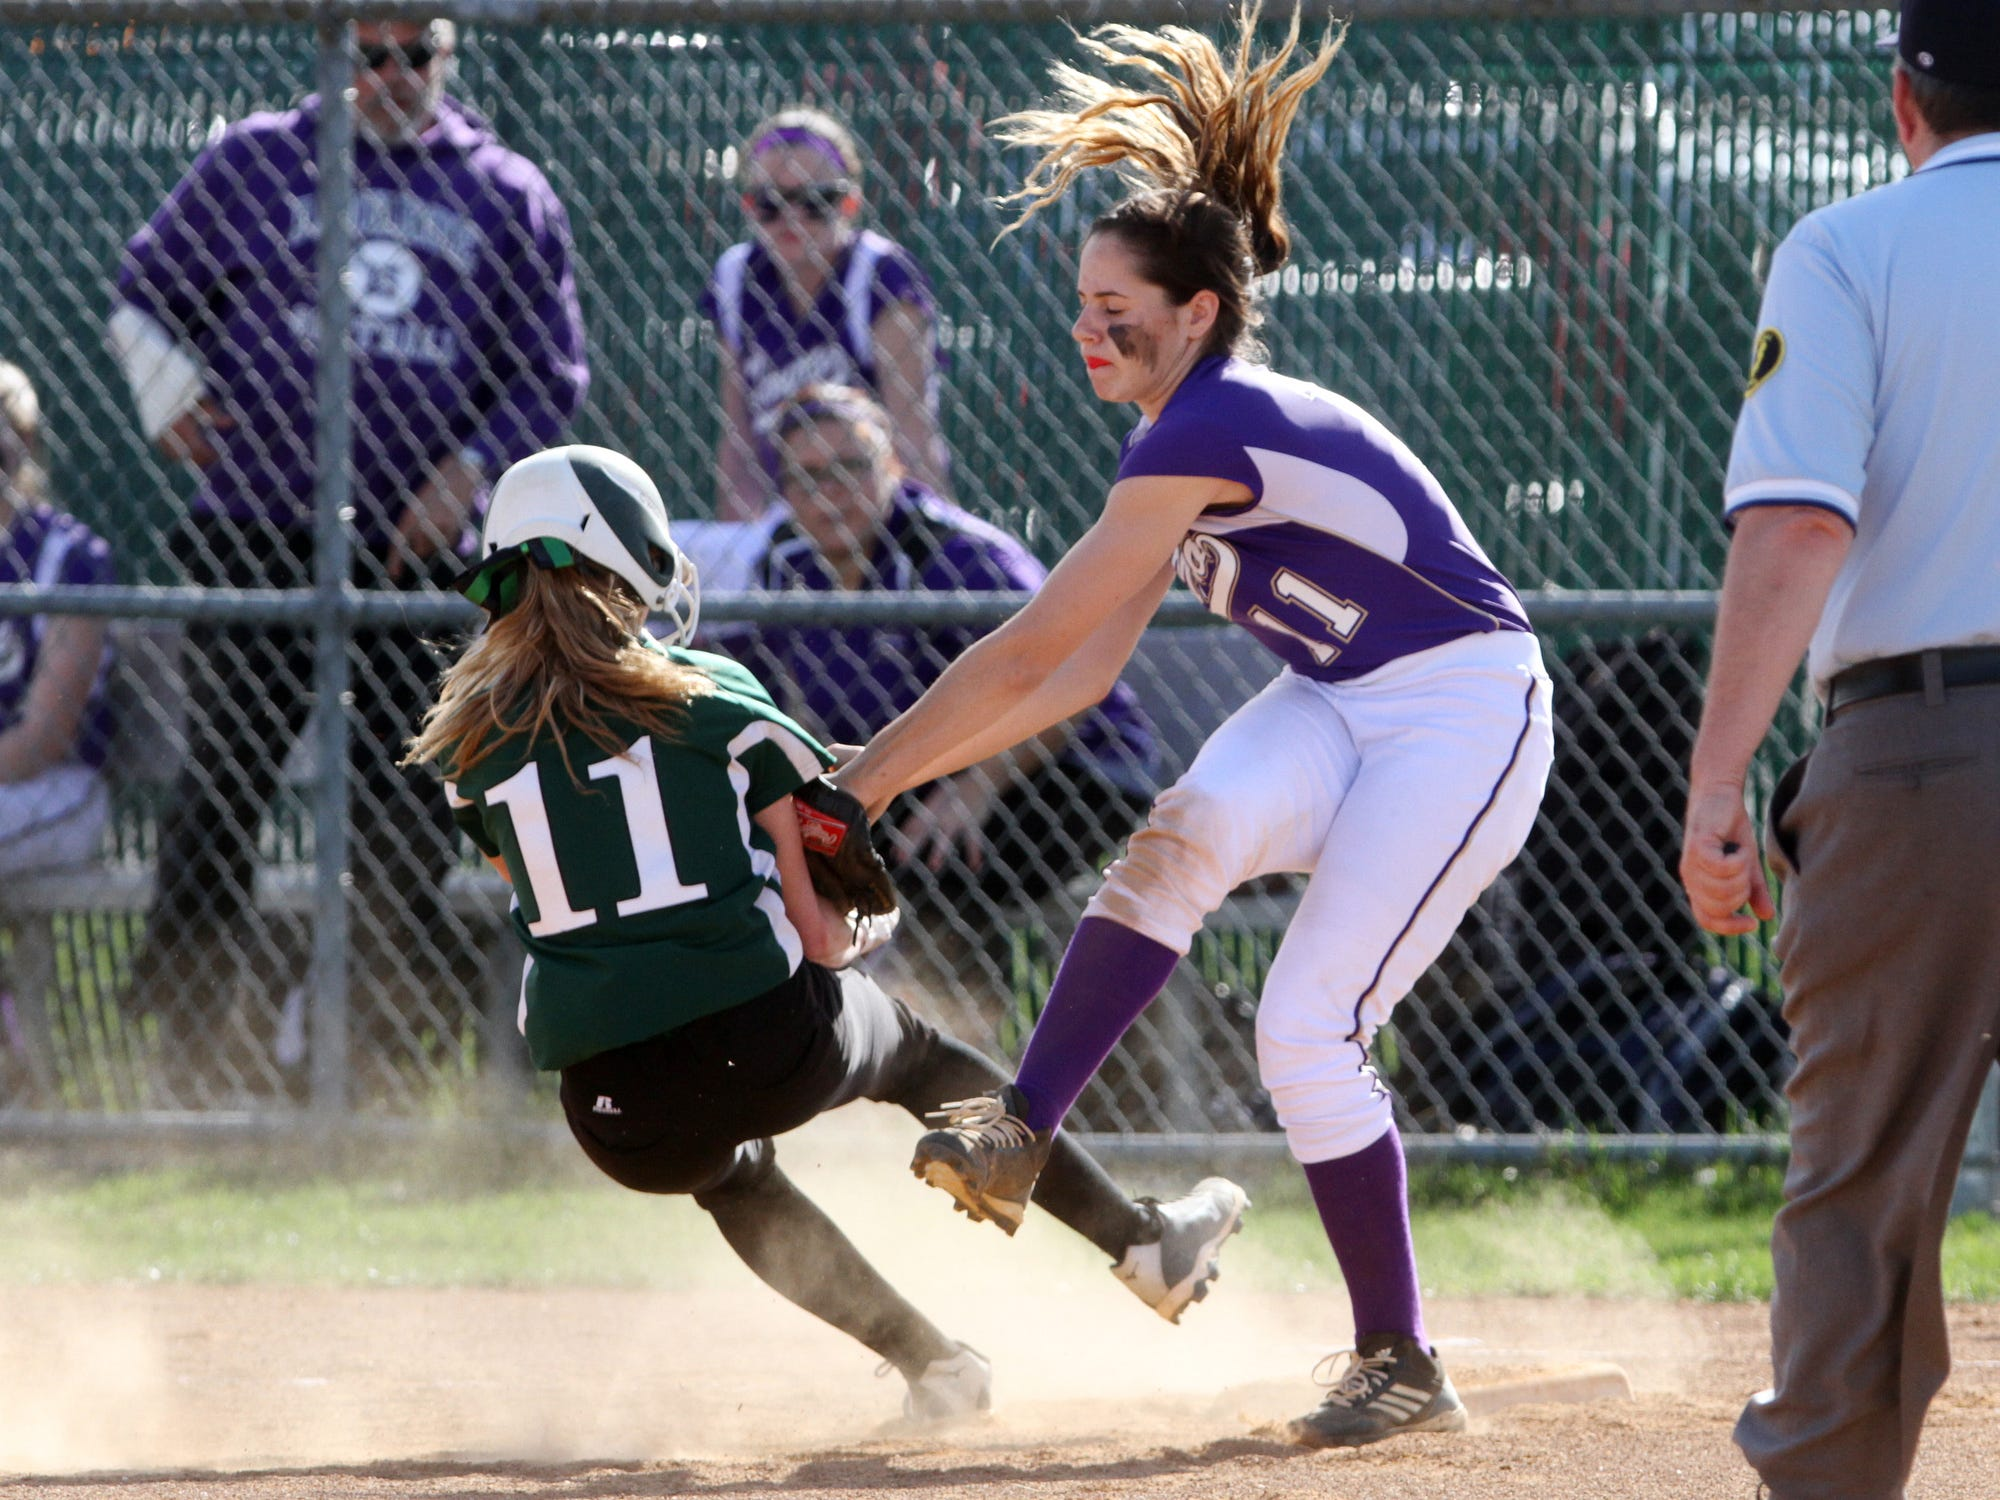 South Plainfield's Caity Hughes is tagged out by Monroe third baseman Cindy Foresta, Wednesday, April 15, 2015, in South Plainfield, NJ.